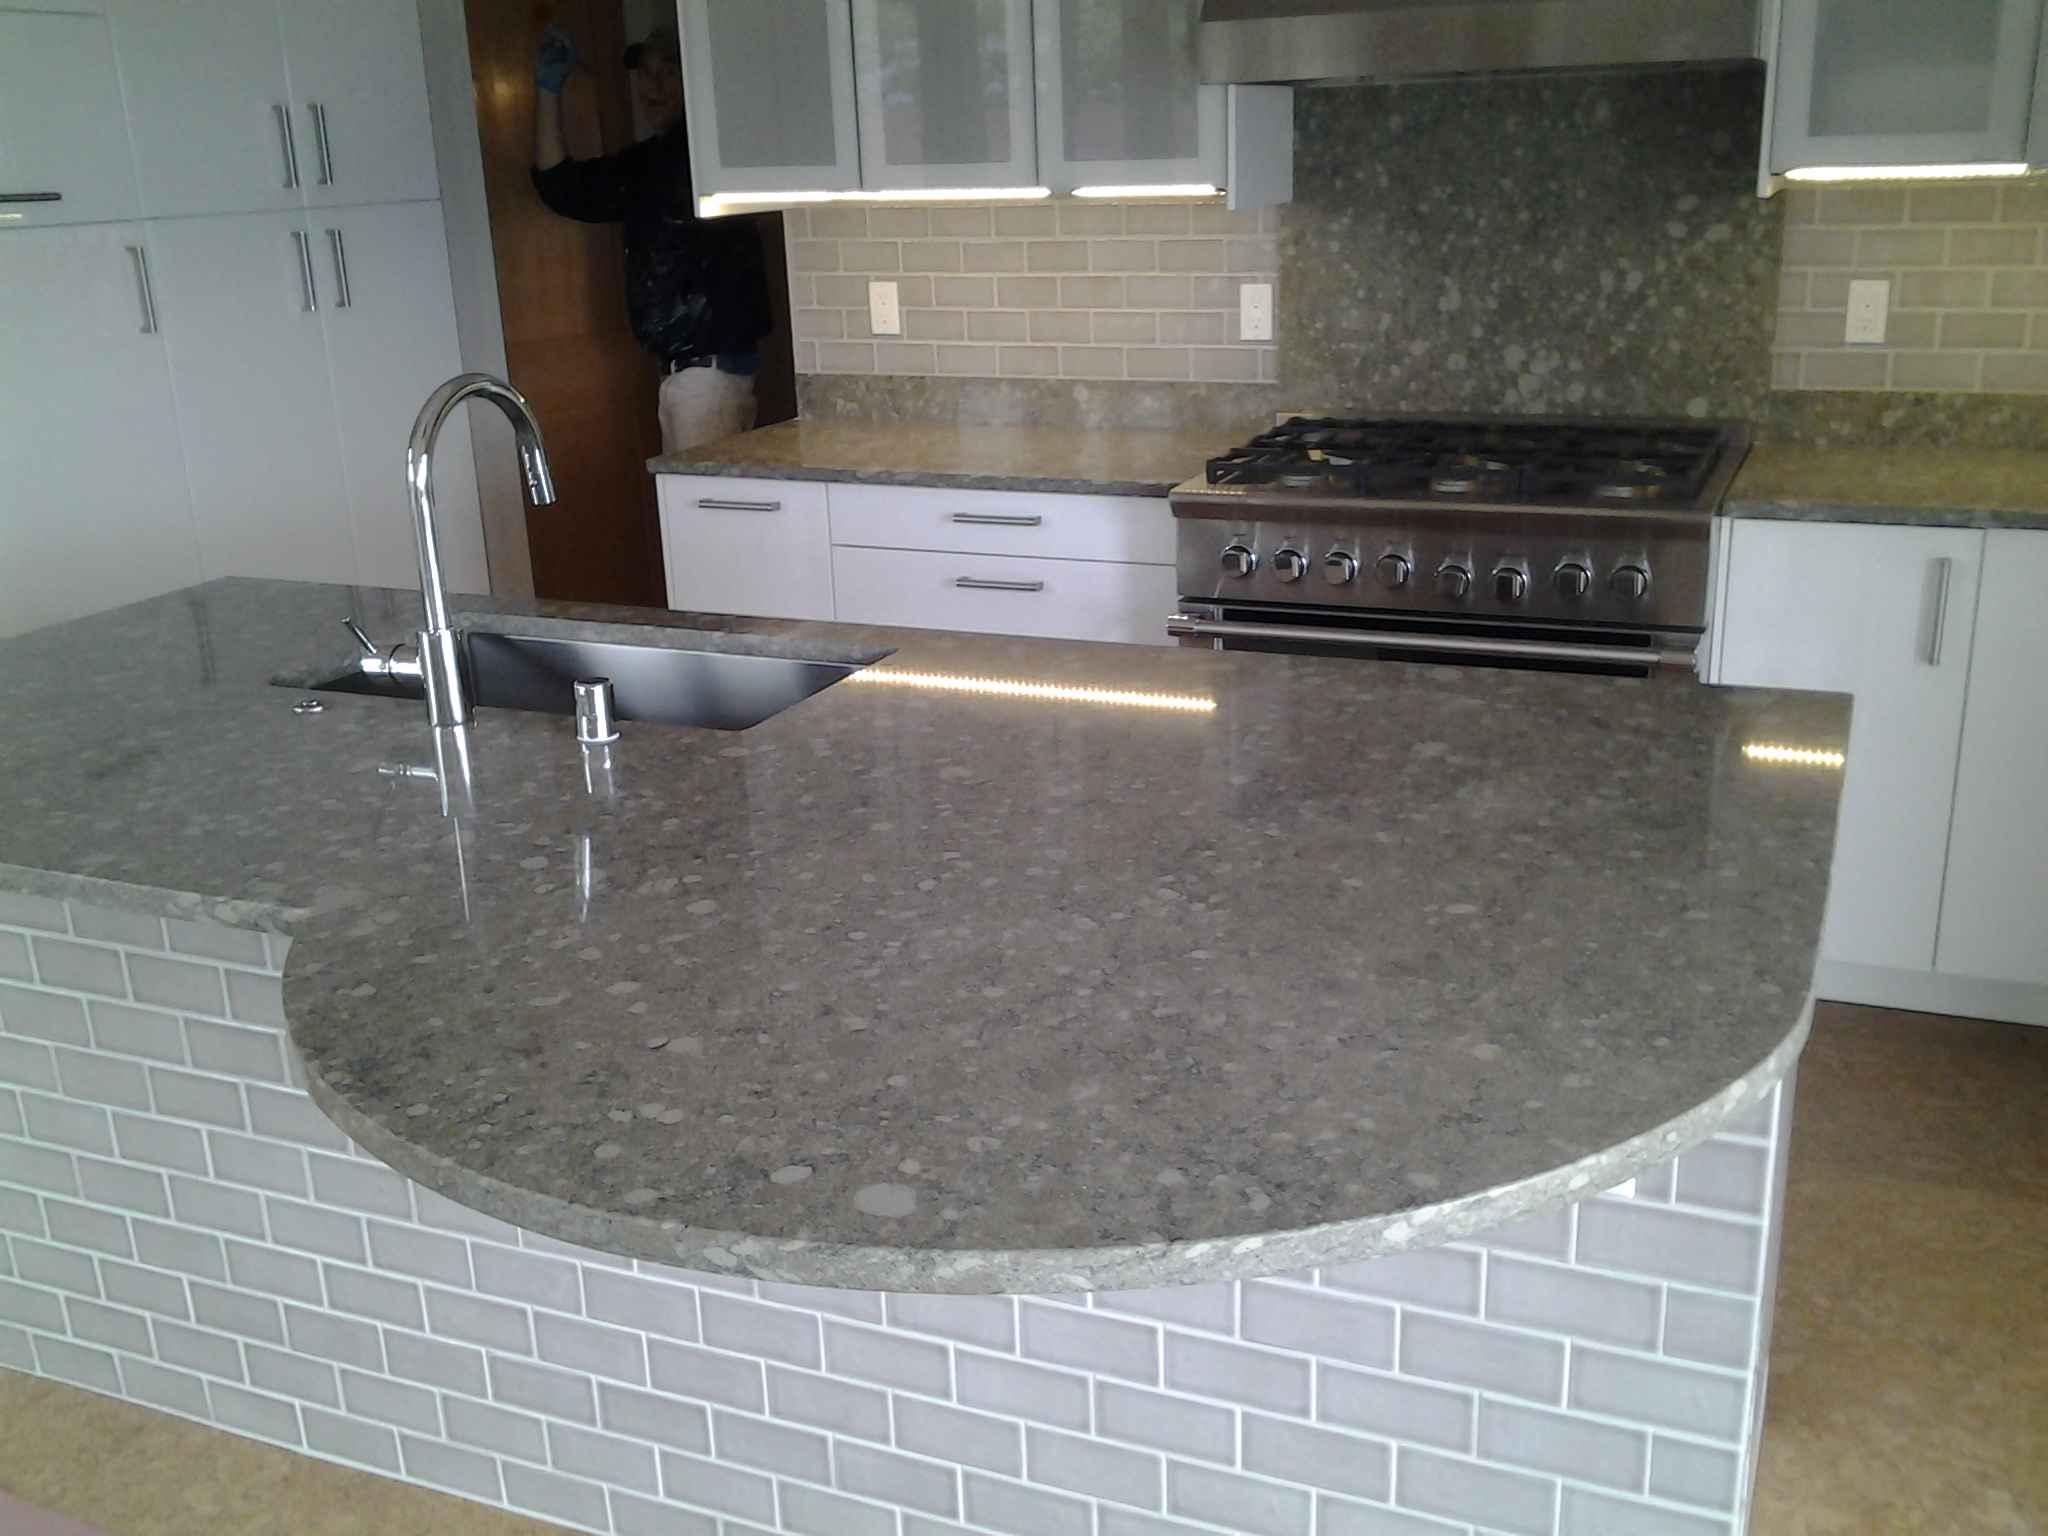 Quartz Countertops Are Tops!